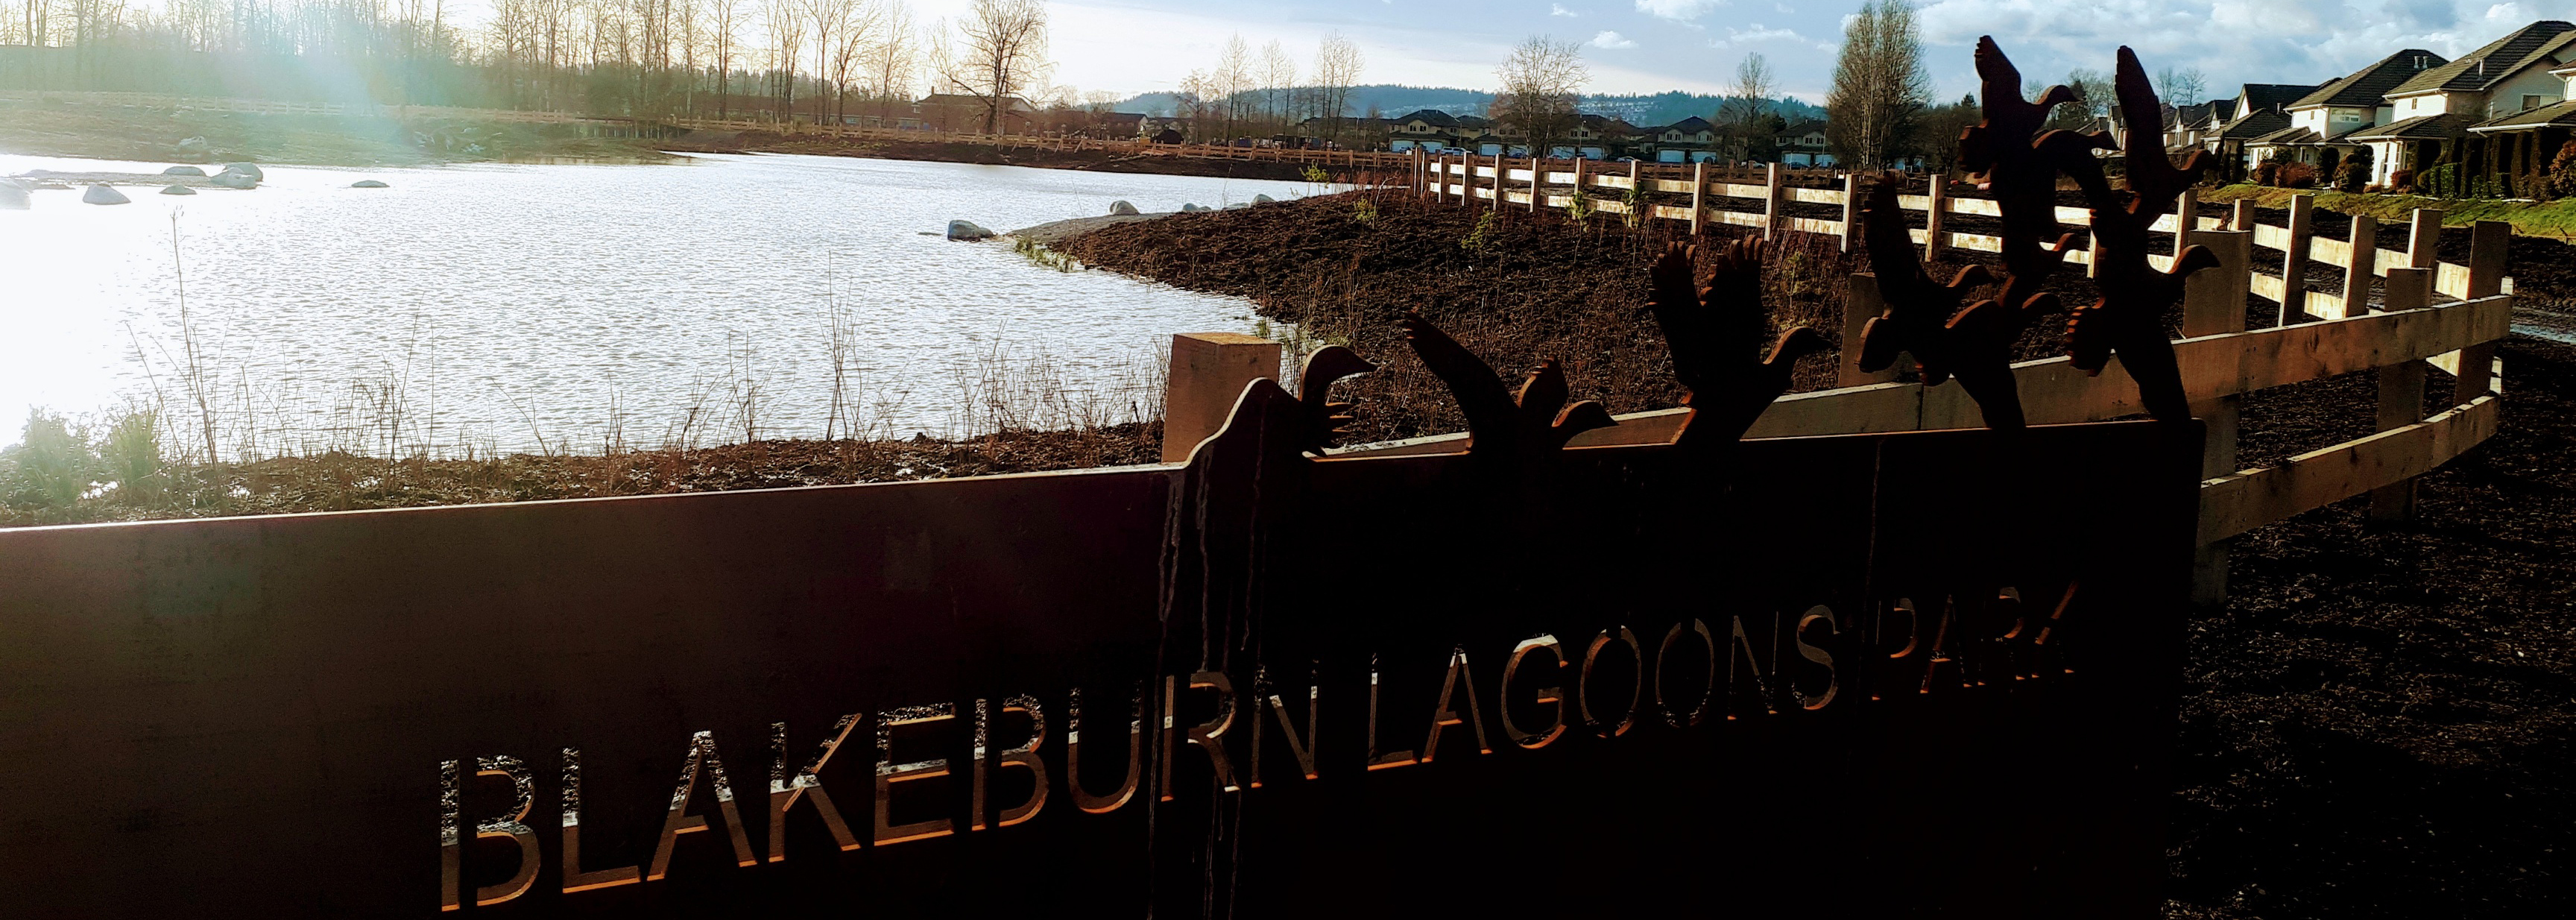 Blackburn Lagoons Park Opens April 28 with Community Party